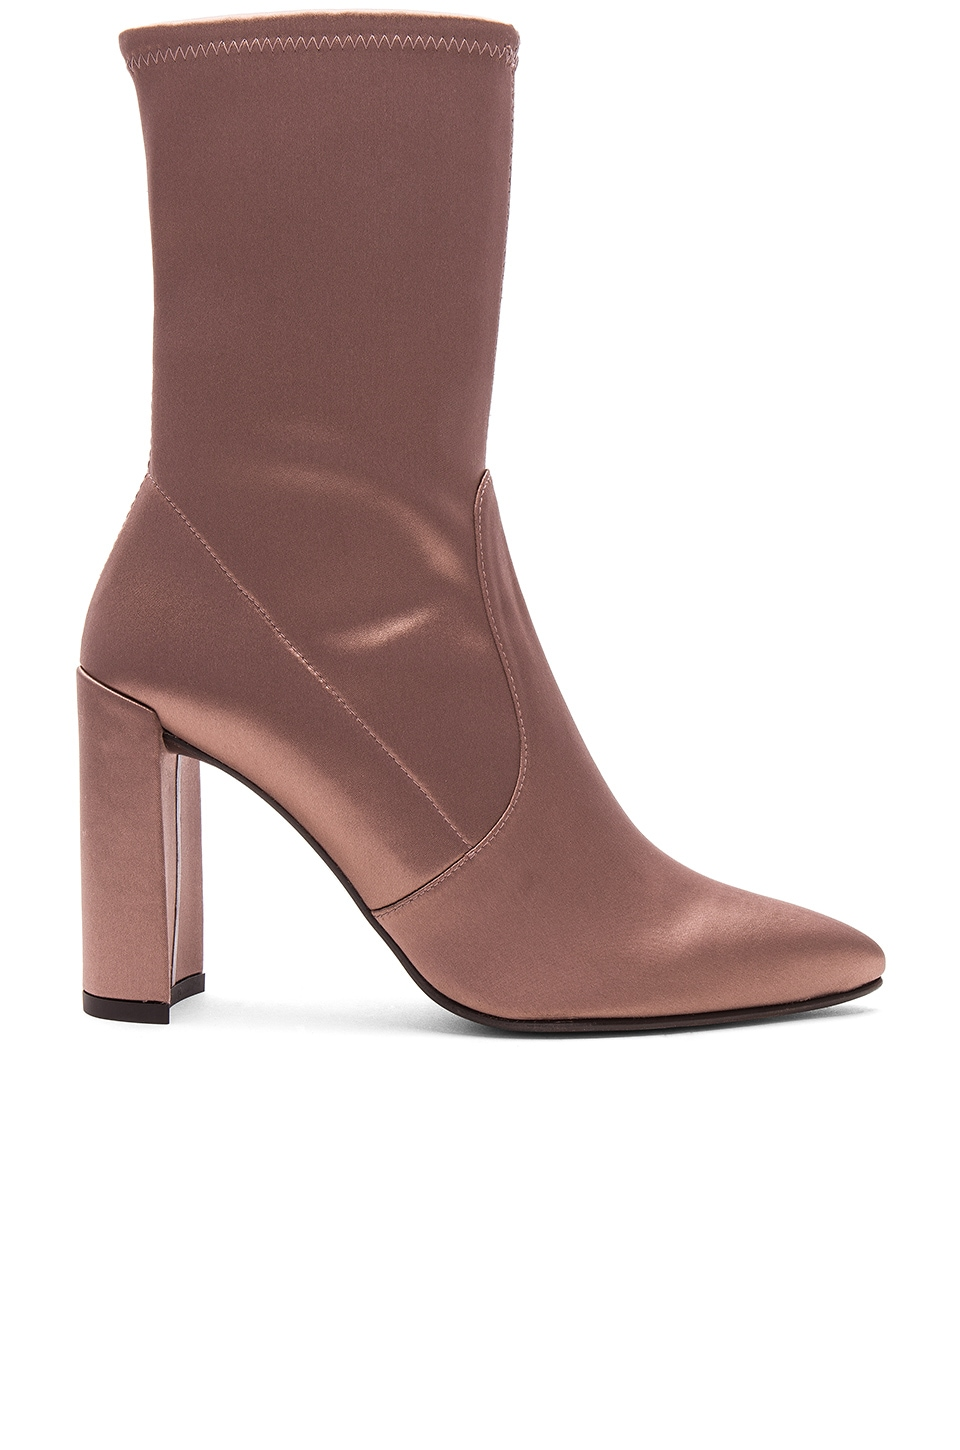 Stuart Weitzman Clinger Bootie in Old Rose